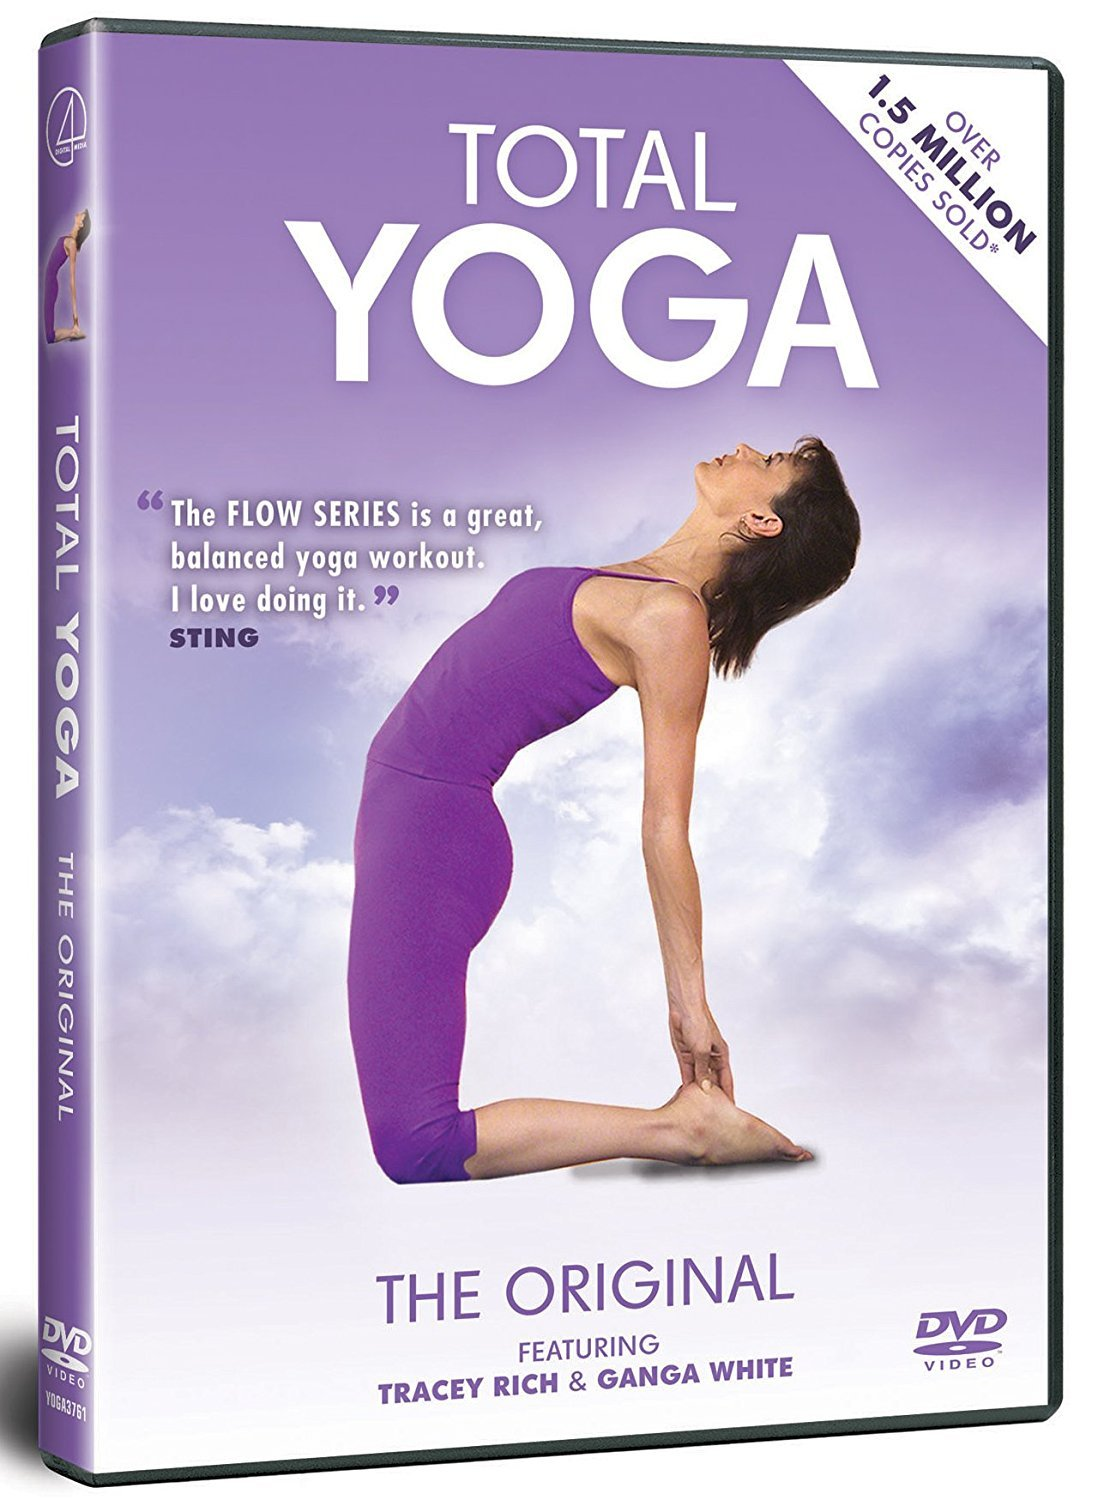 Total Yoga - The Original [DVD] [Reino Unido]: Amazon.es ...